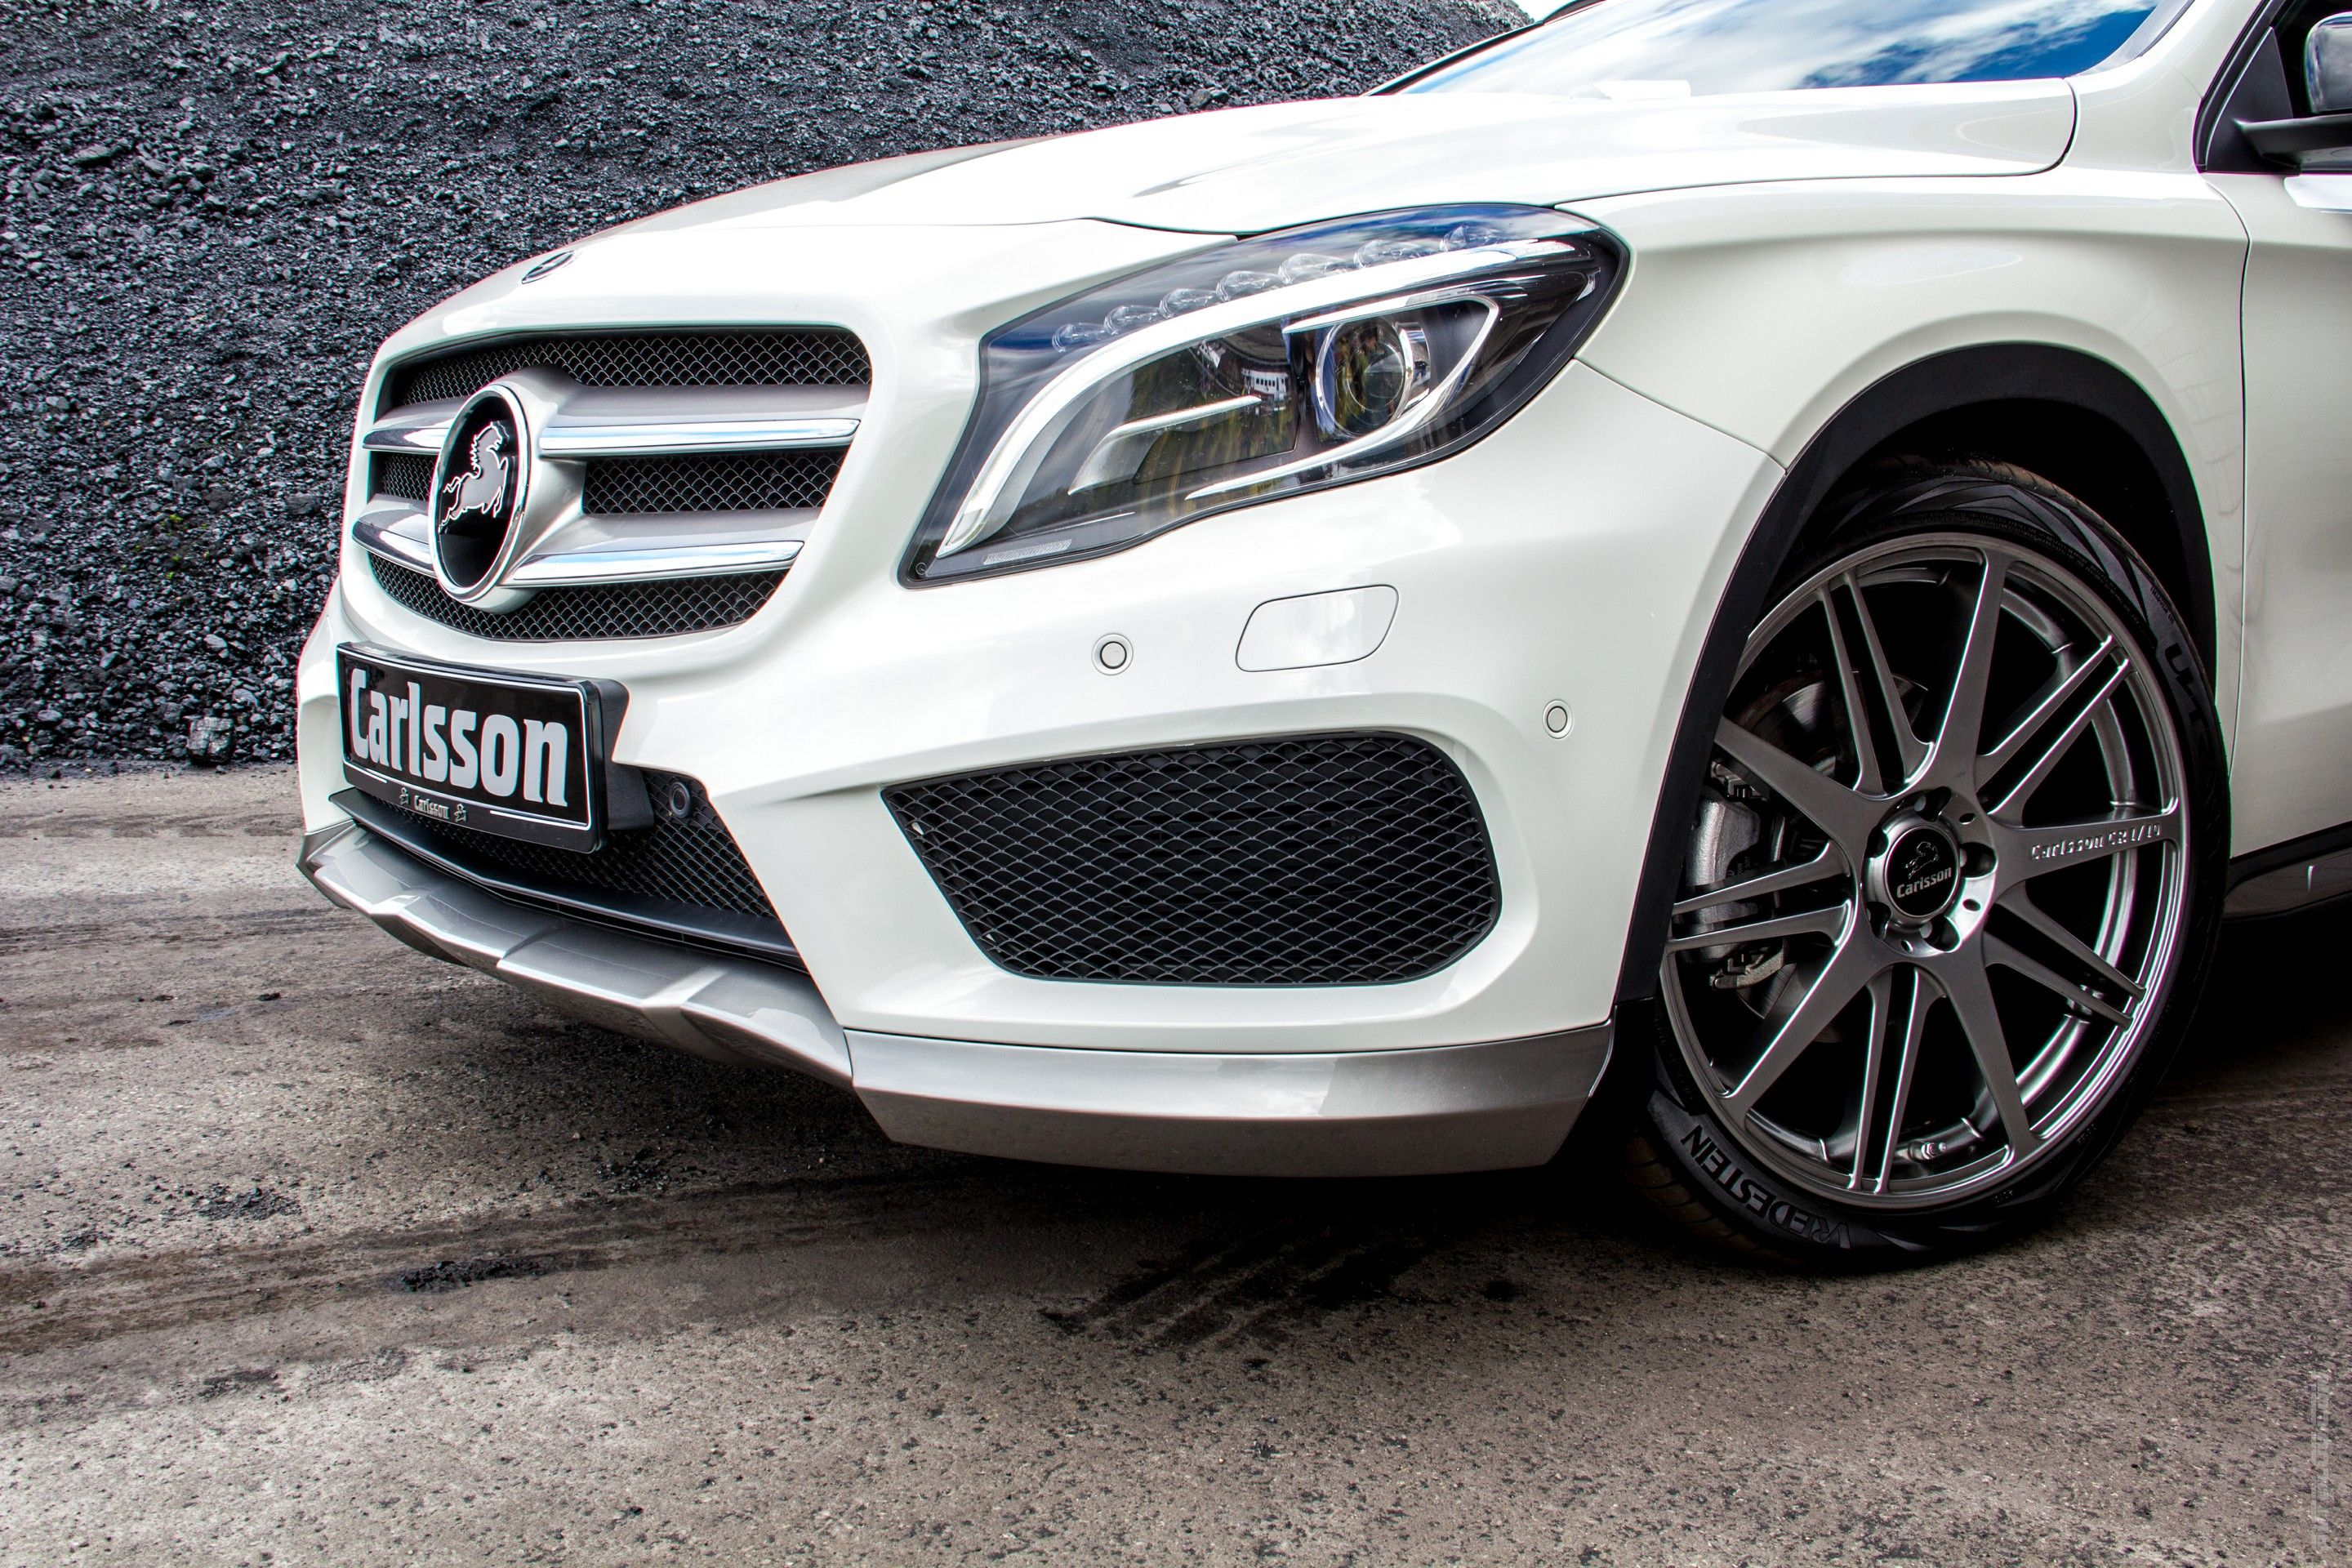 2014 Mercedes Benz GLA от атеРье Carlsson